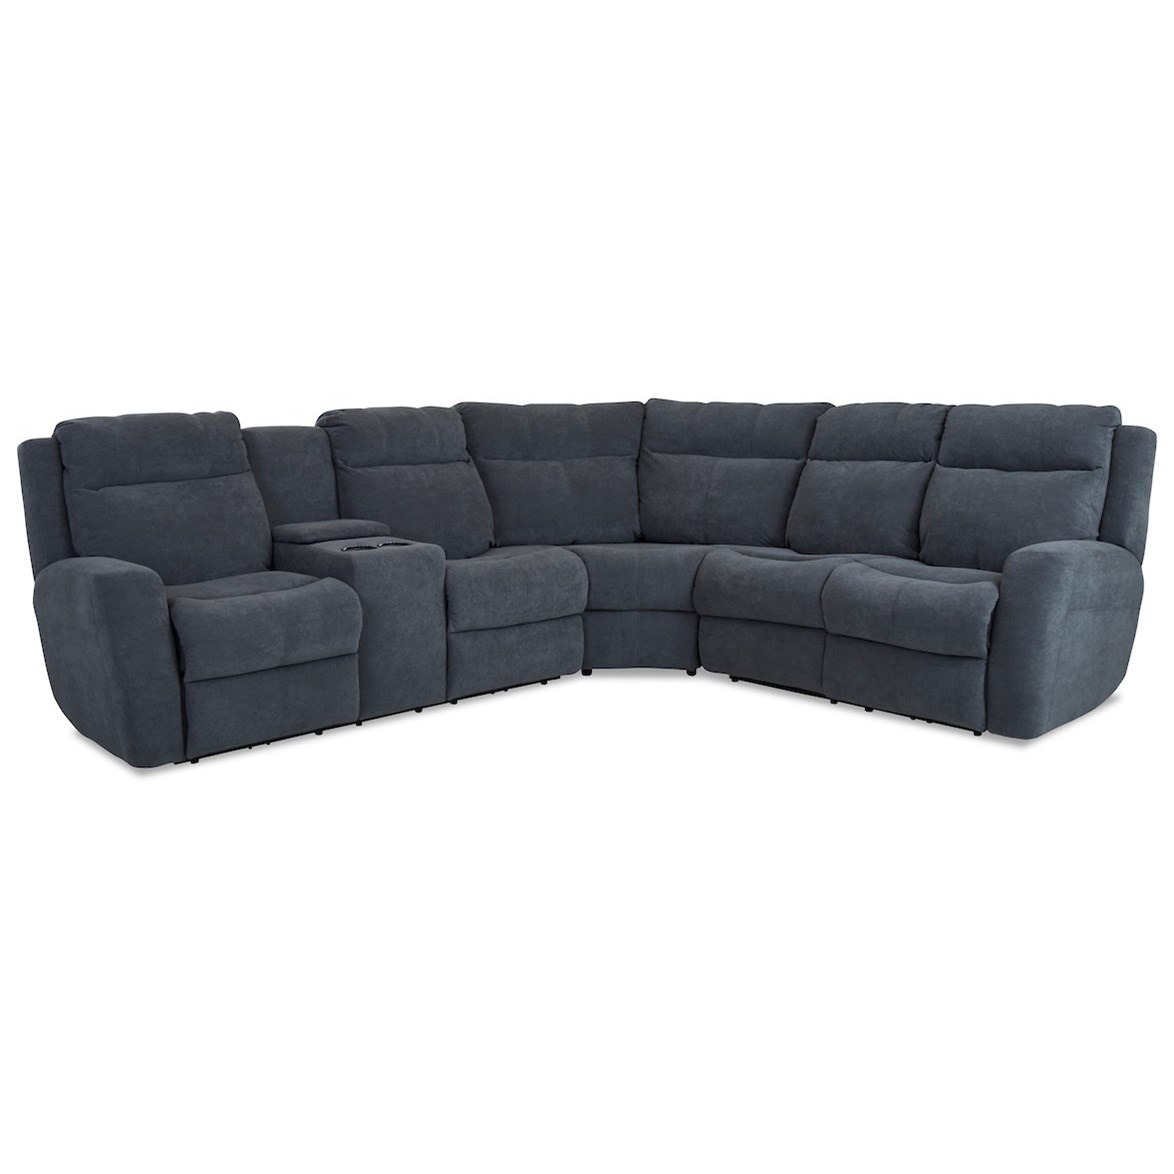 Brooks 4-Seat PowerRecline Sectional w/ LAF Console by Klaussner at Godby Home Furnishings